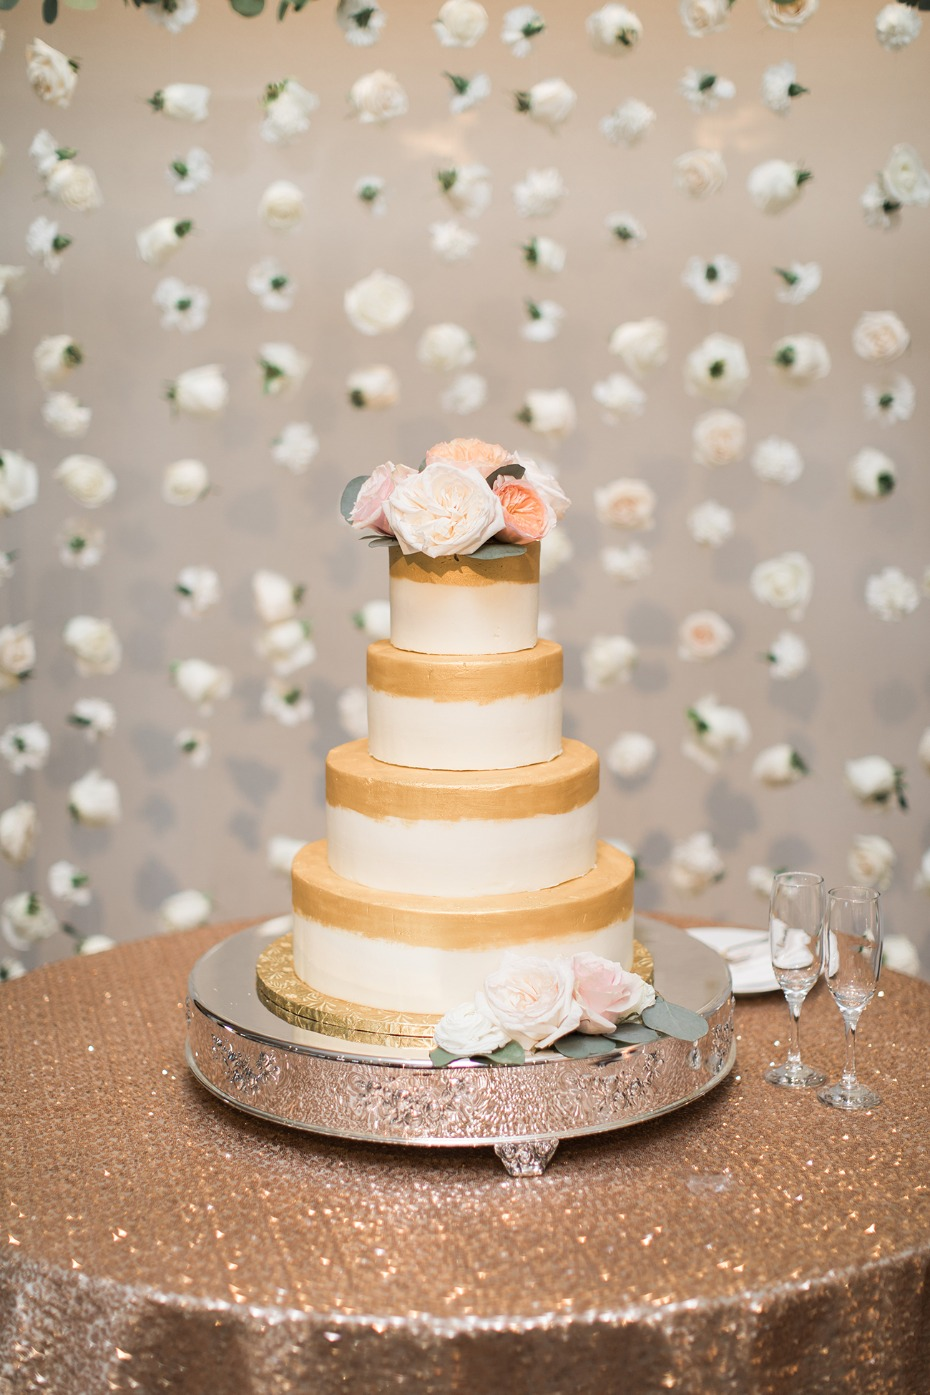 simple and sweet wedding cake with gold accents and a floating rose backdrop